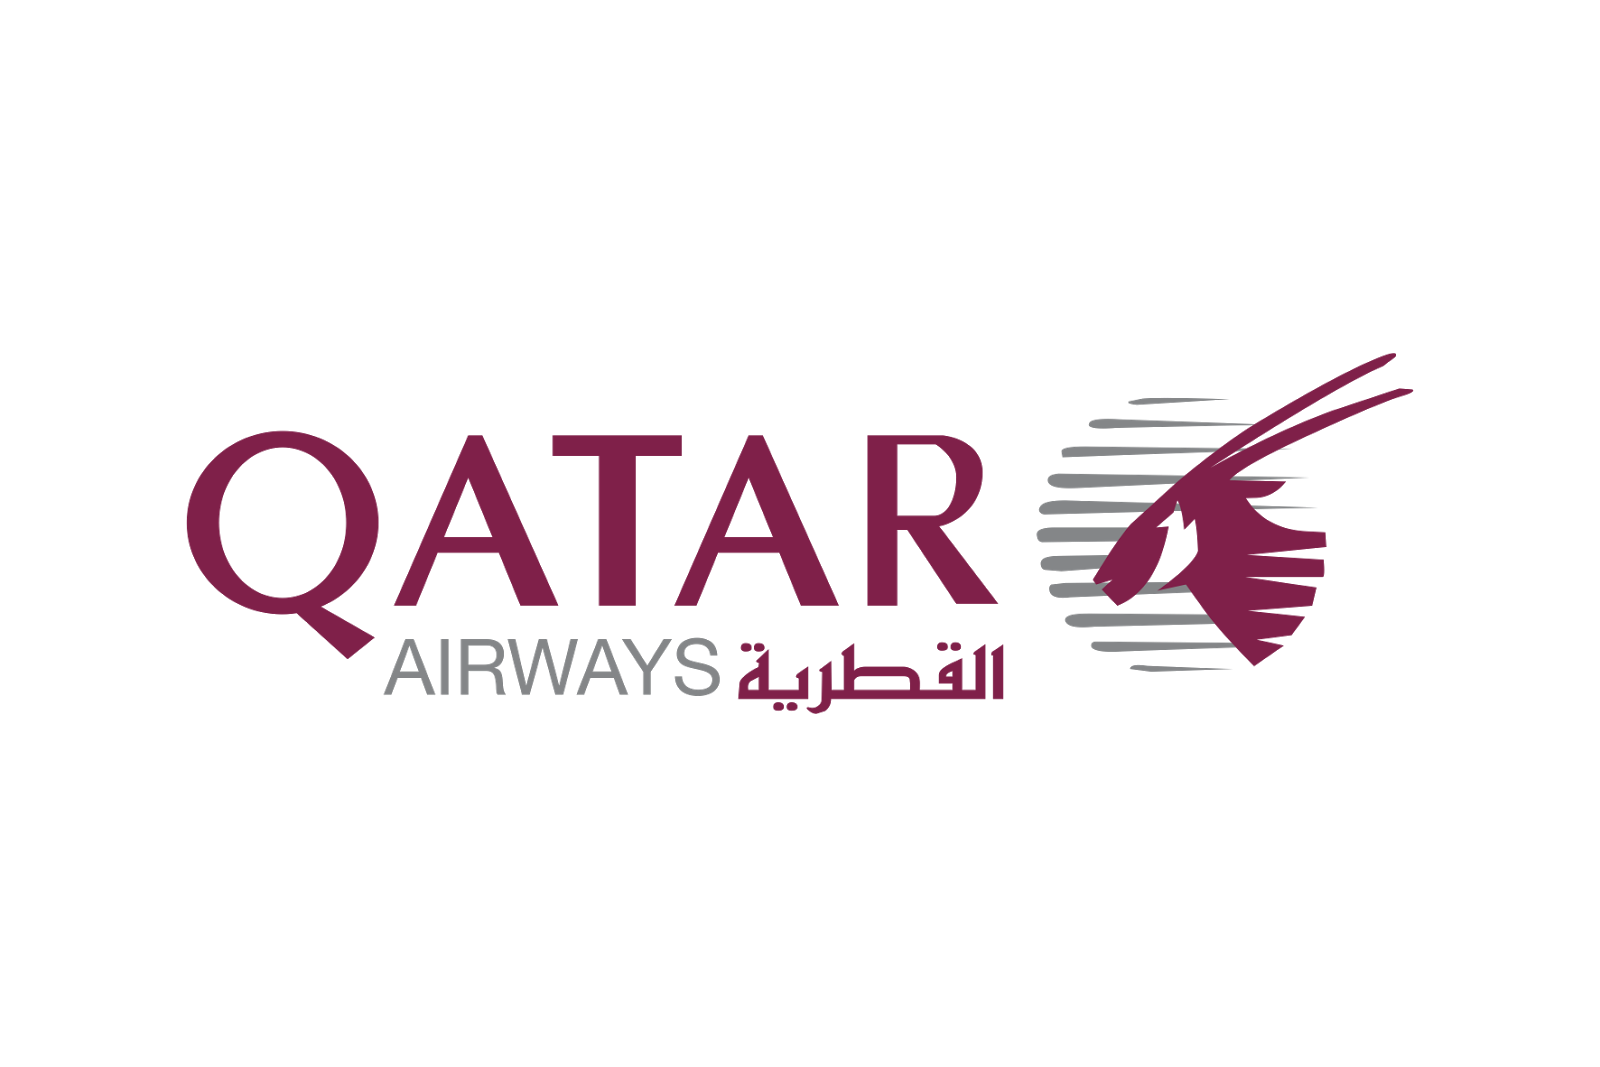 QATAR Airways (Катар Эйрвейз)